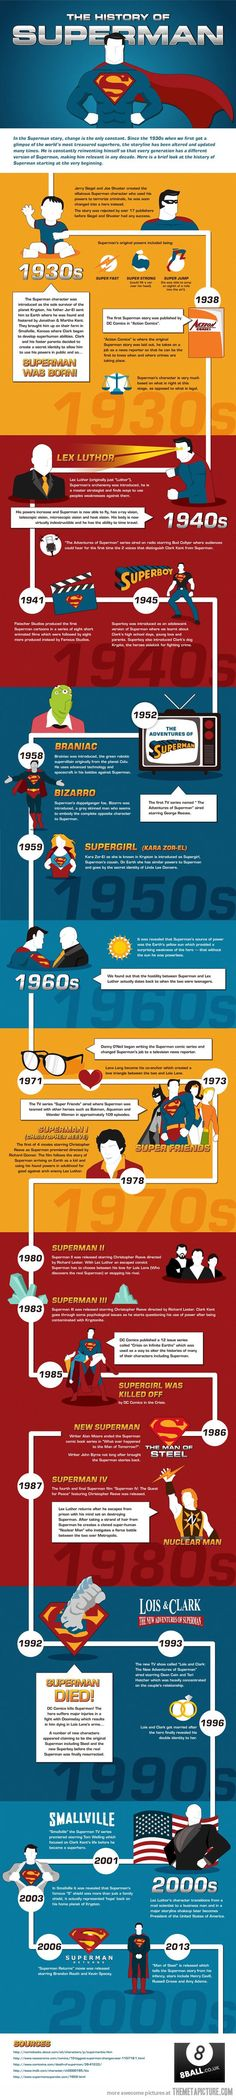 The History of #Superman